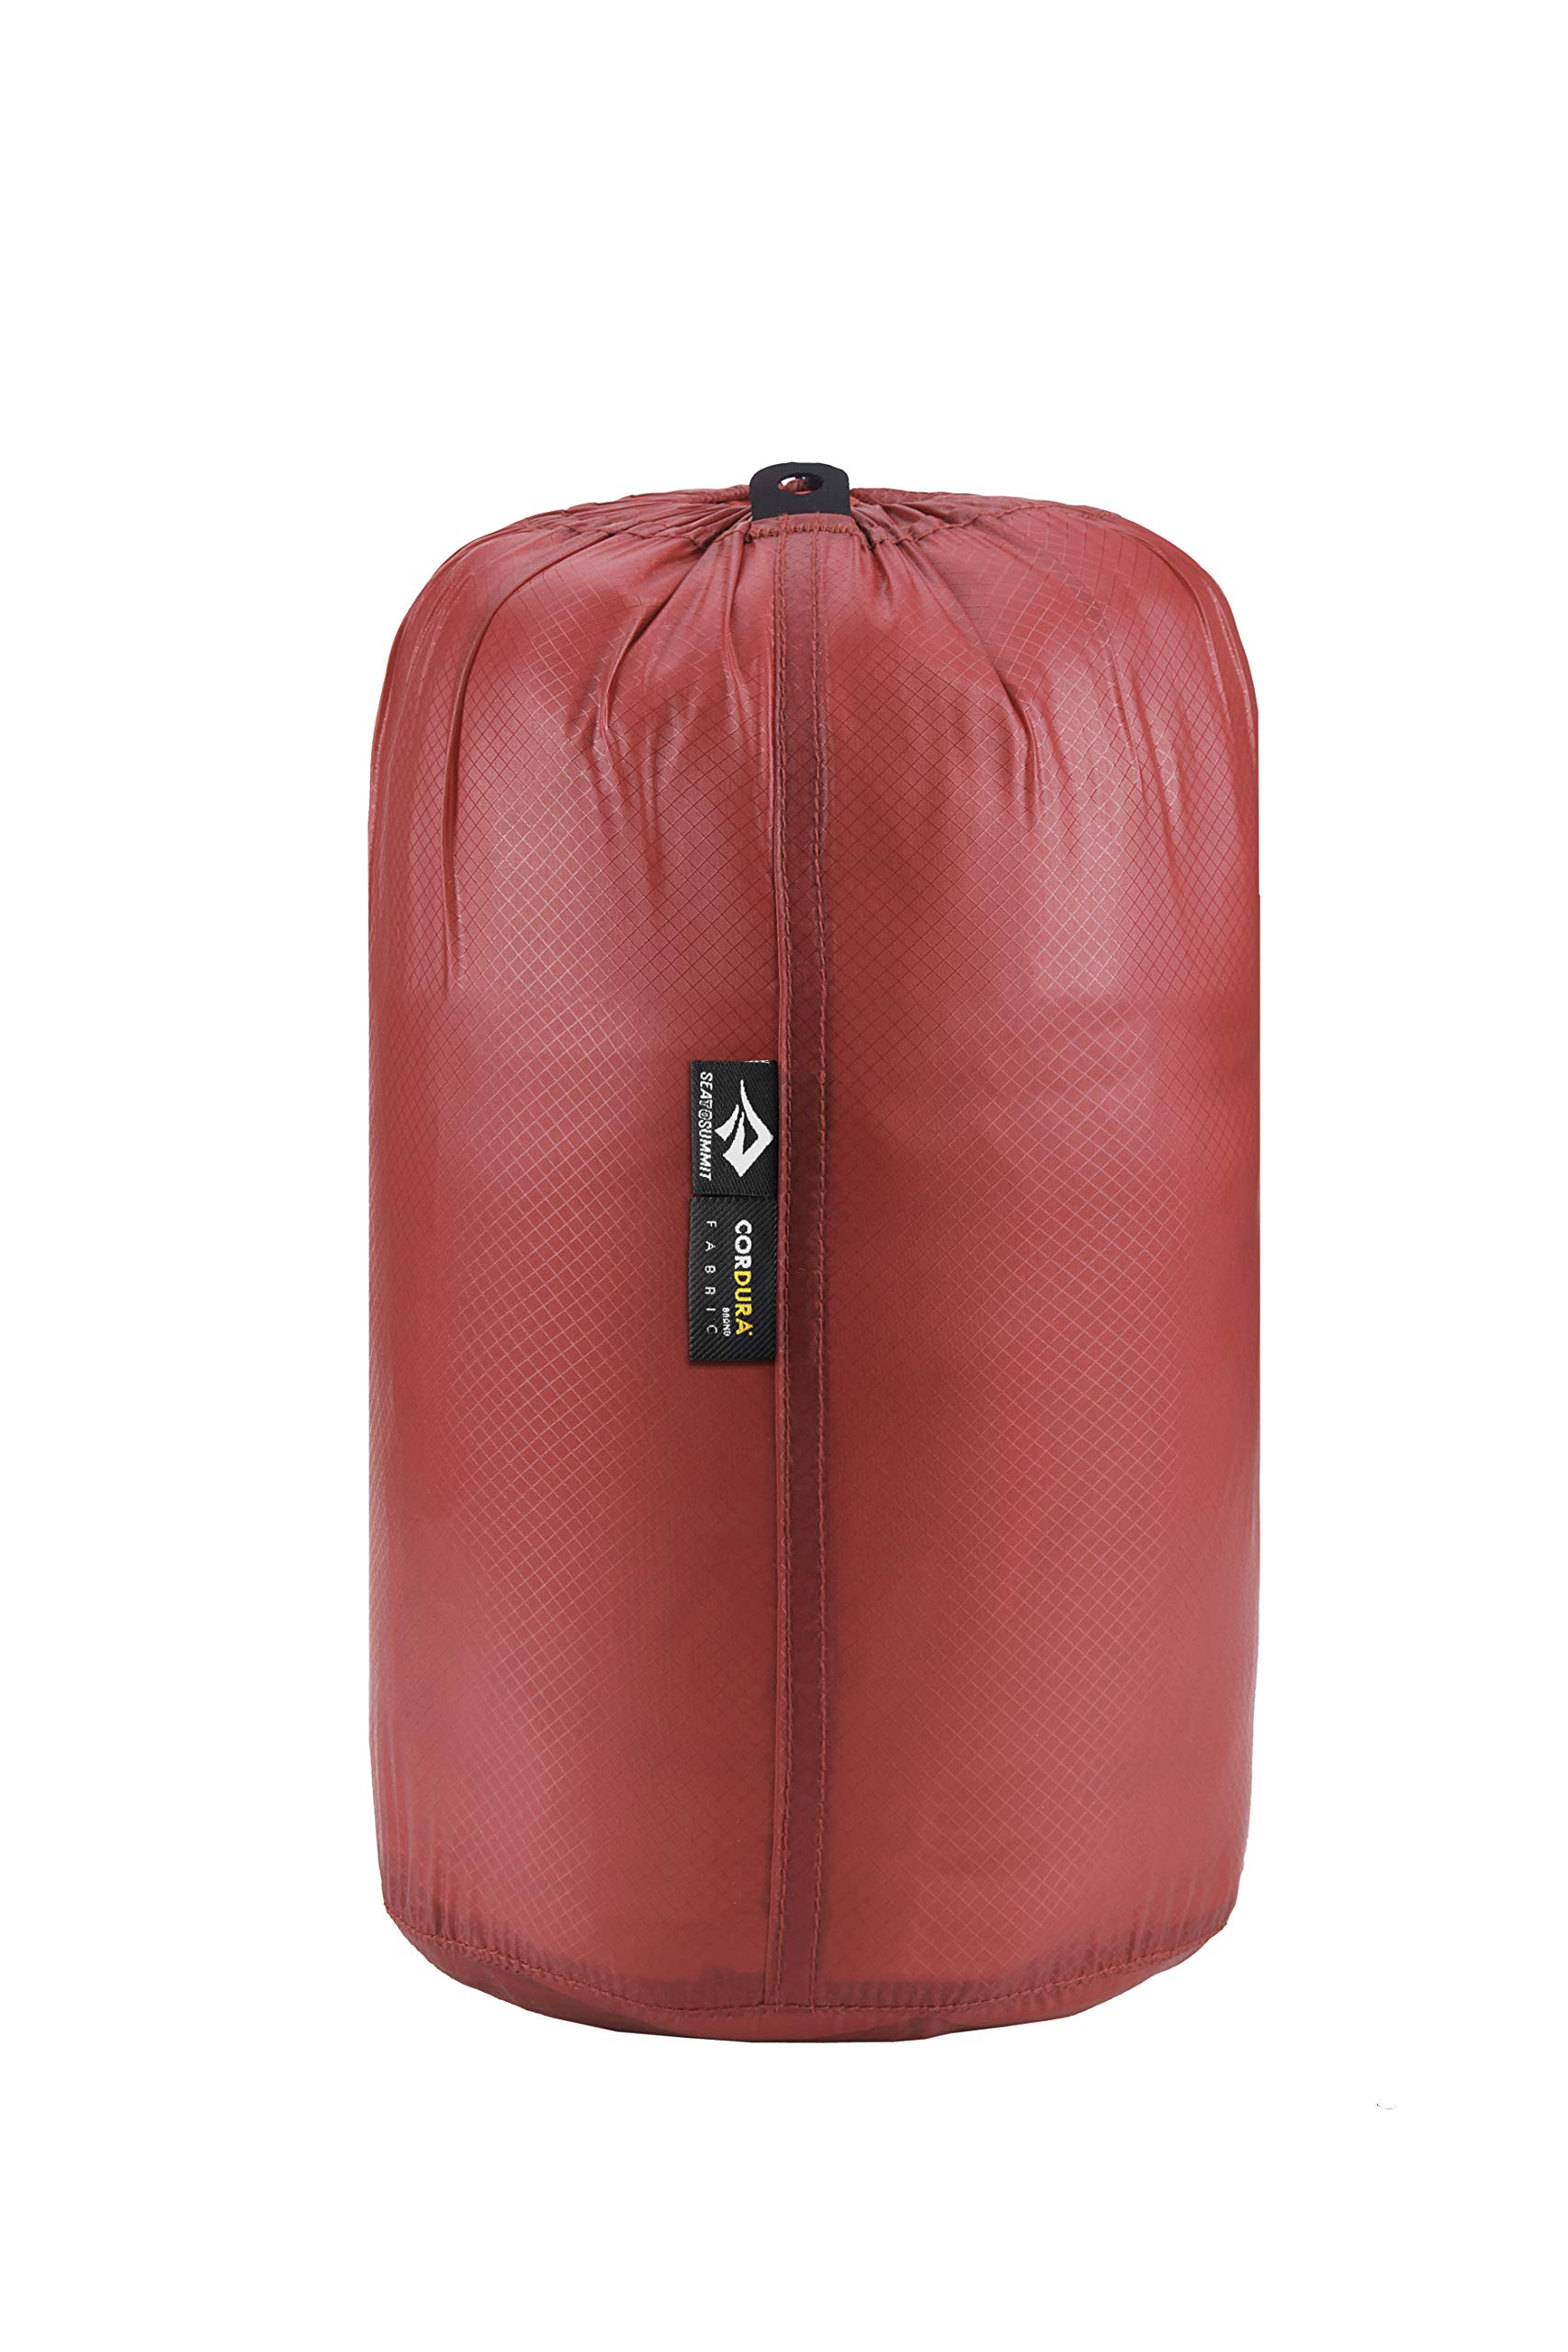 Sea to Summit Ultra-SIL Stuff Sack, Red, 6.5 Liter by Sea to Summit